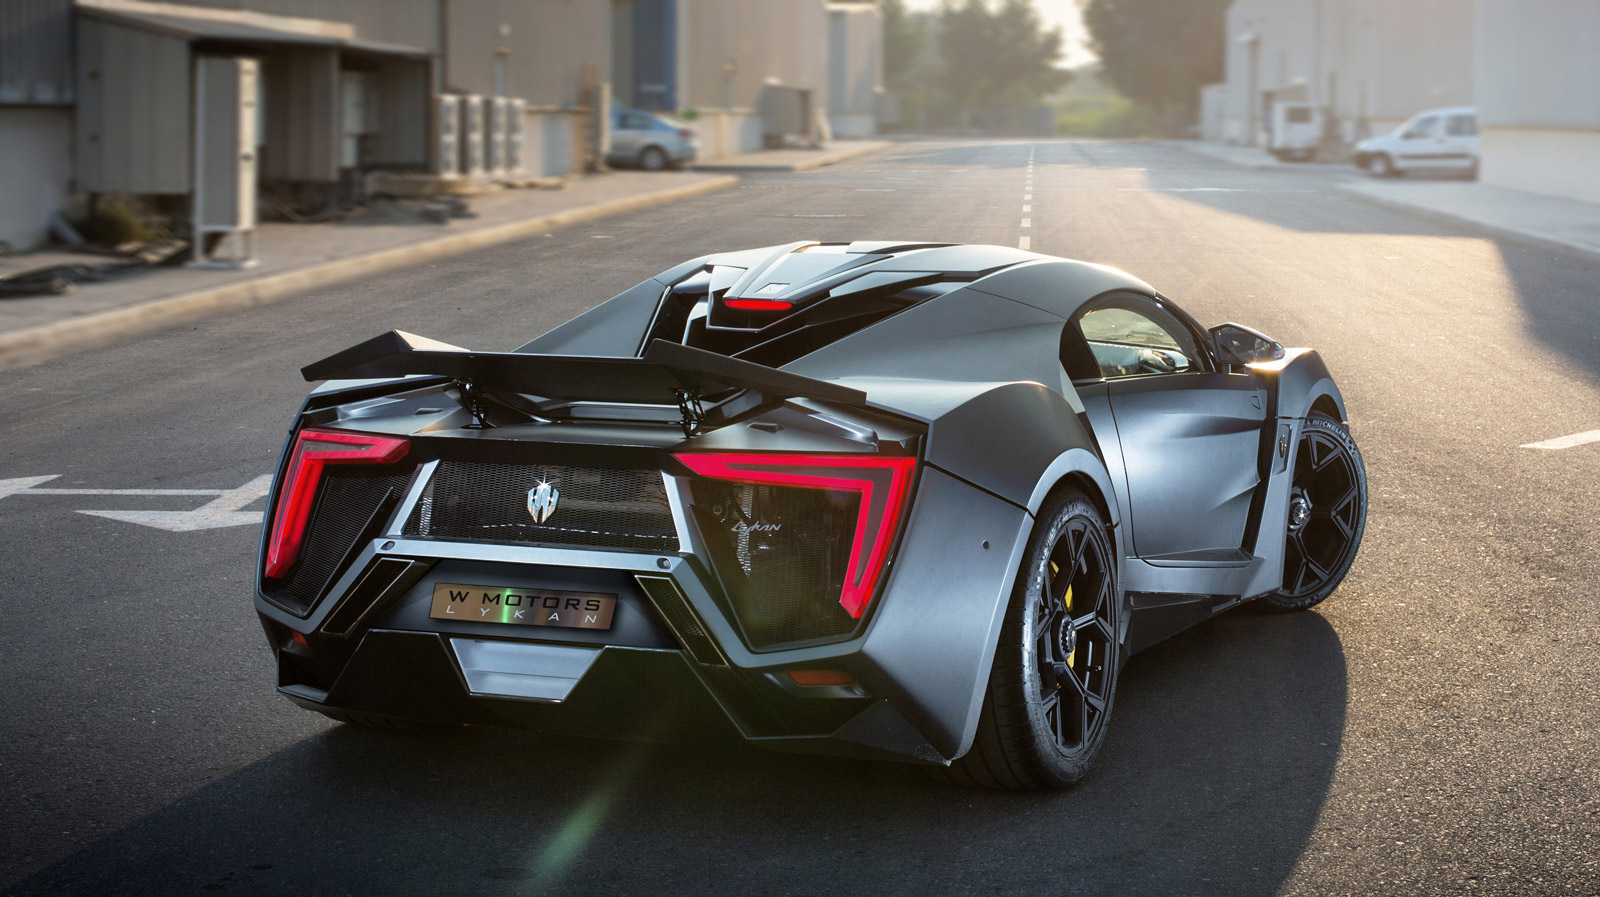 770 Horsepower Lykan Hypersport Set For 2014 Top Marques